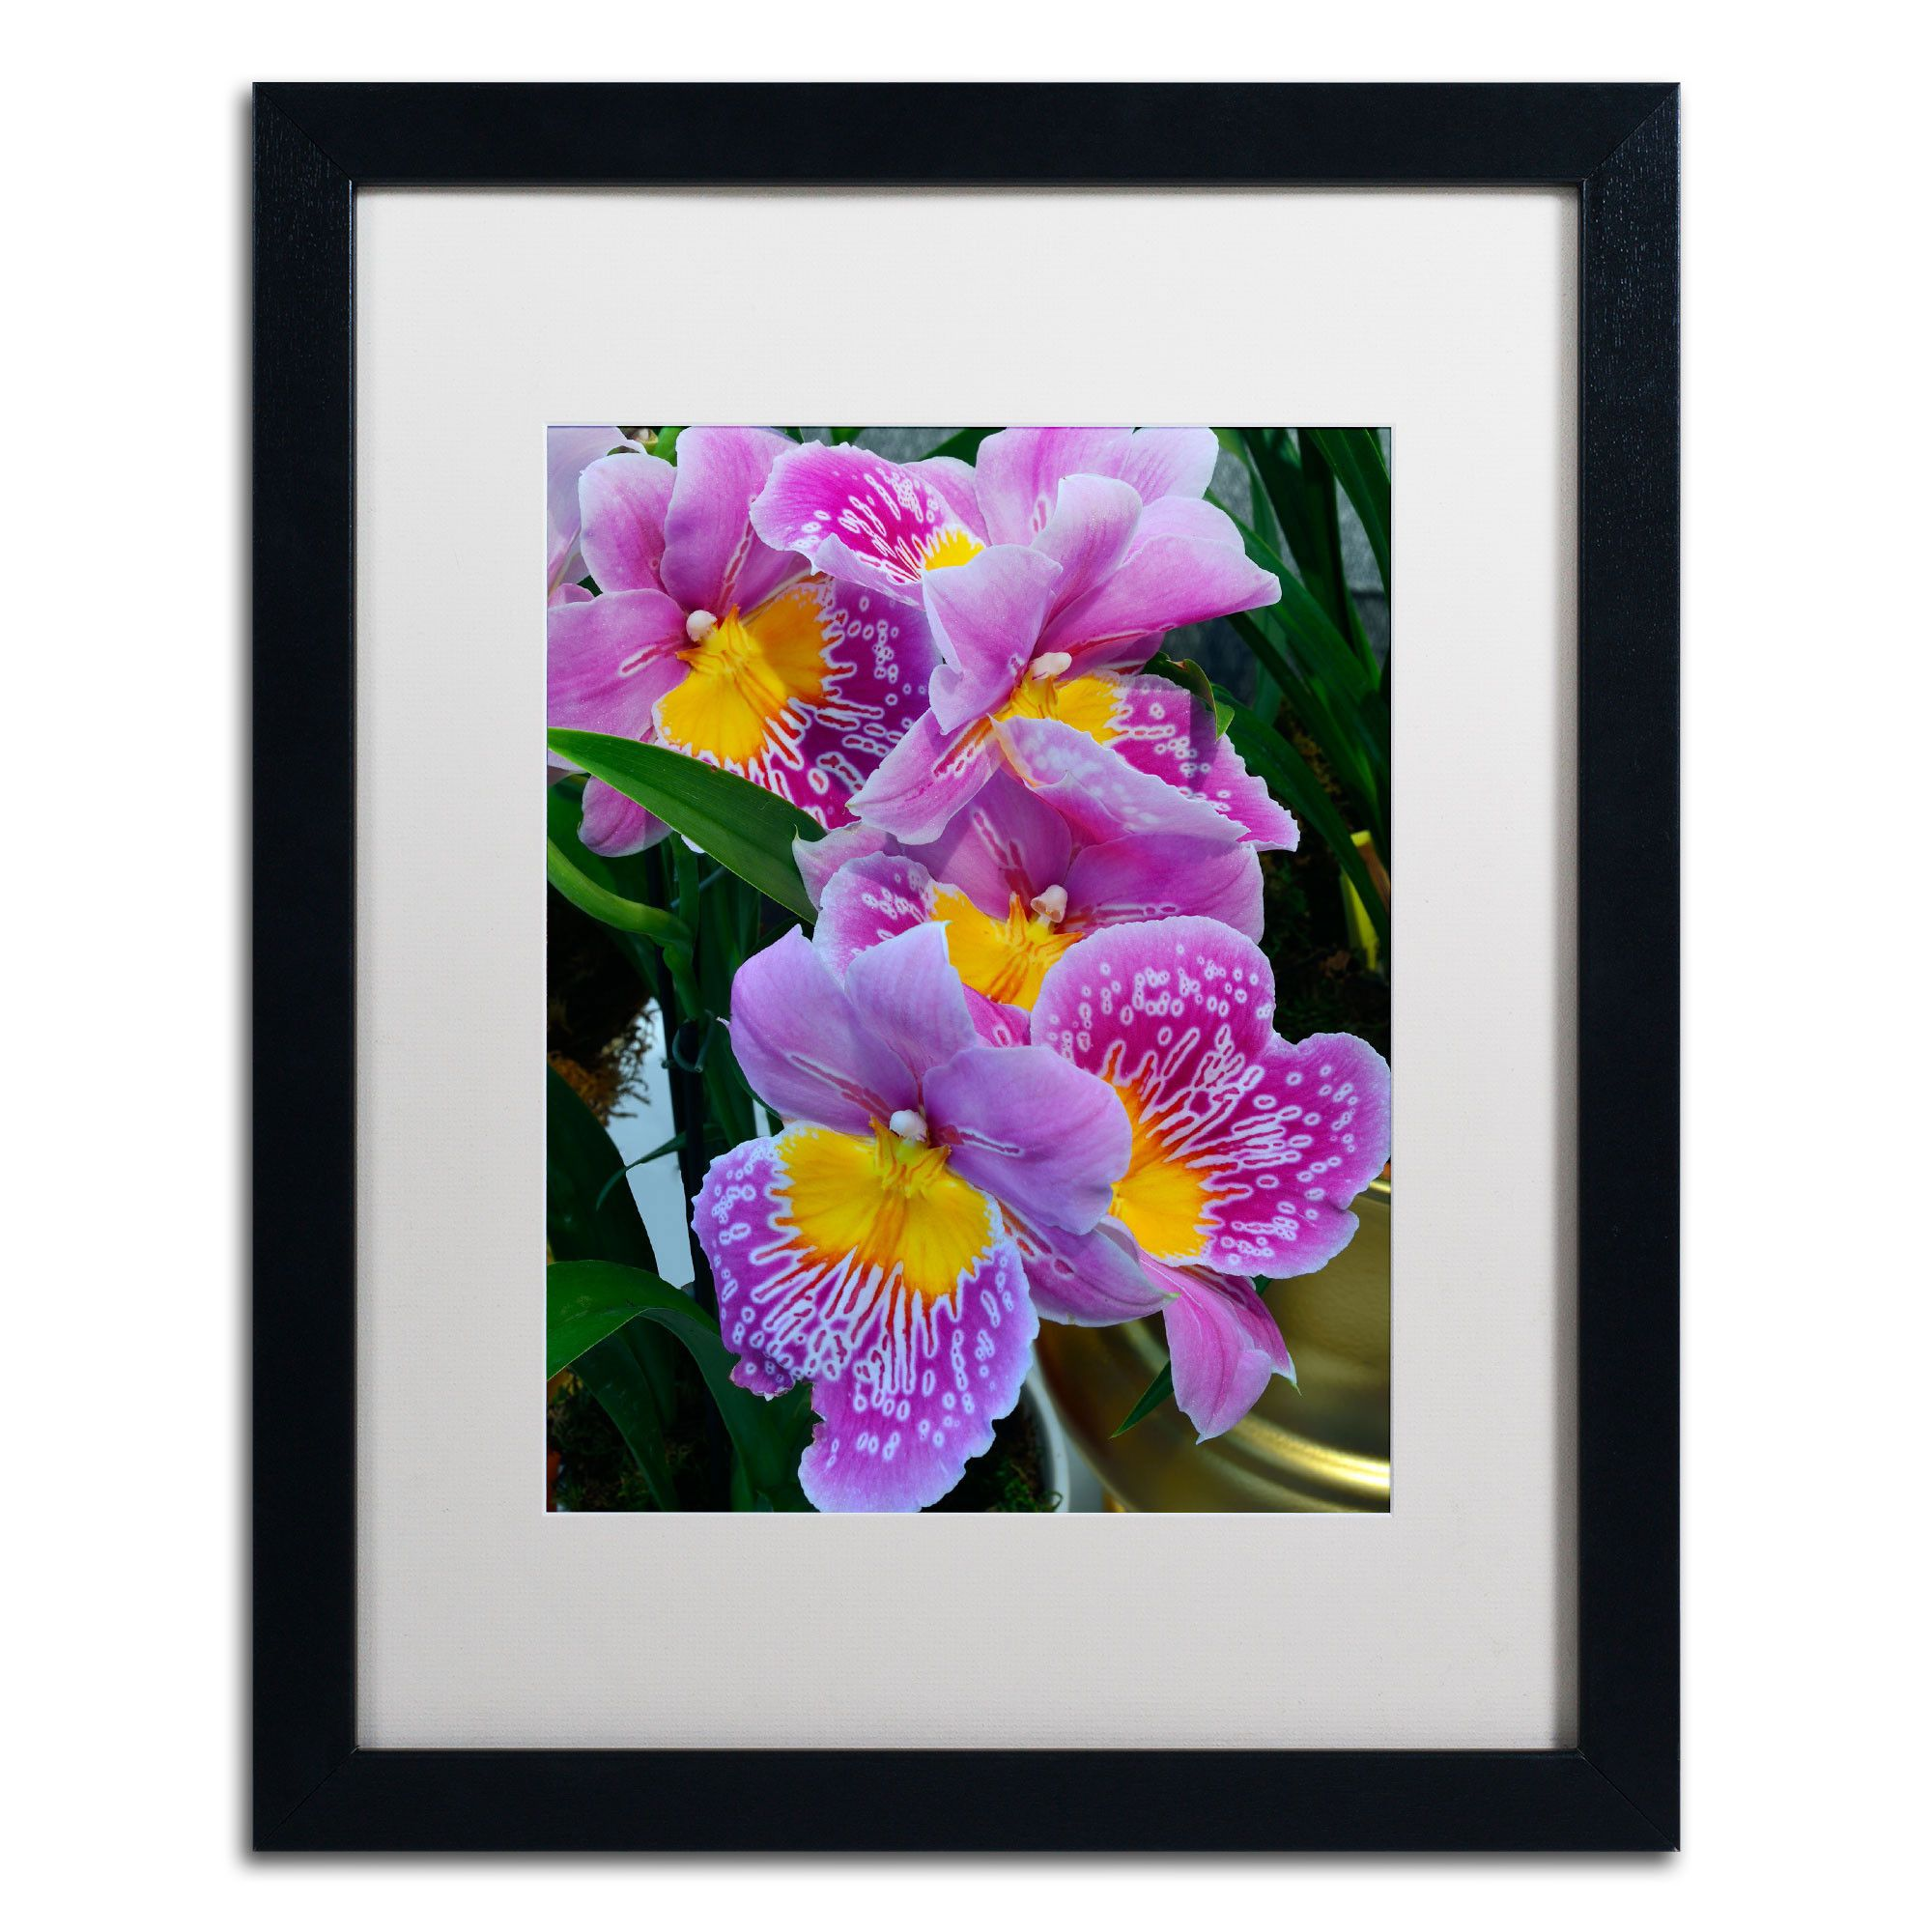 'Happy Orchids' by Kurt Shaffer Framed Photographic Print